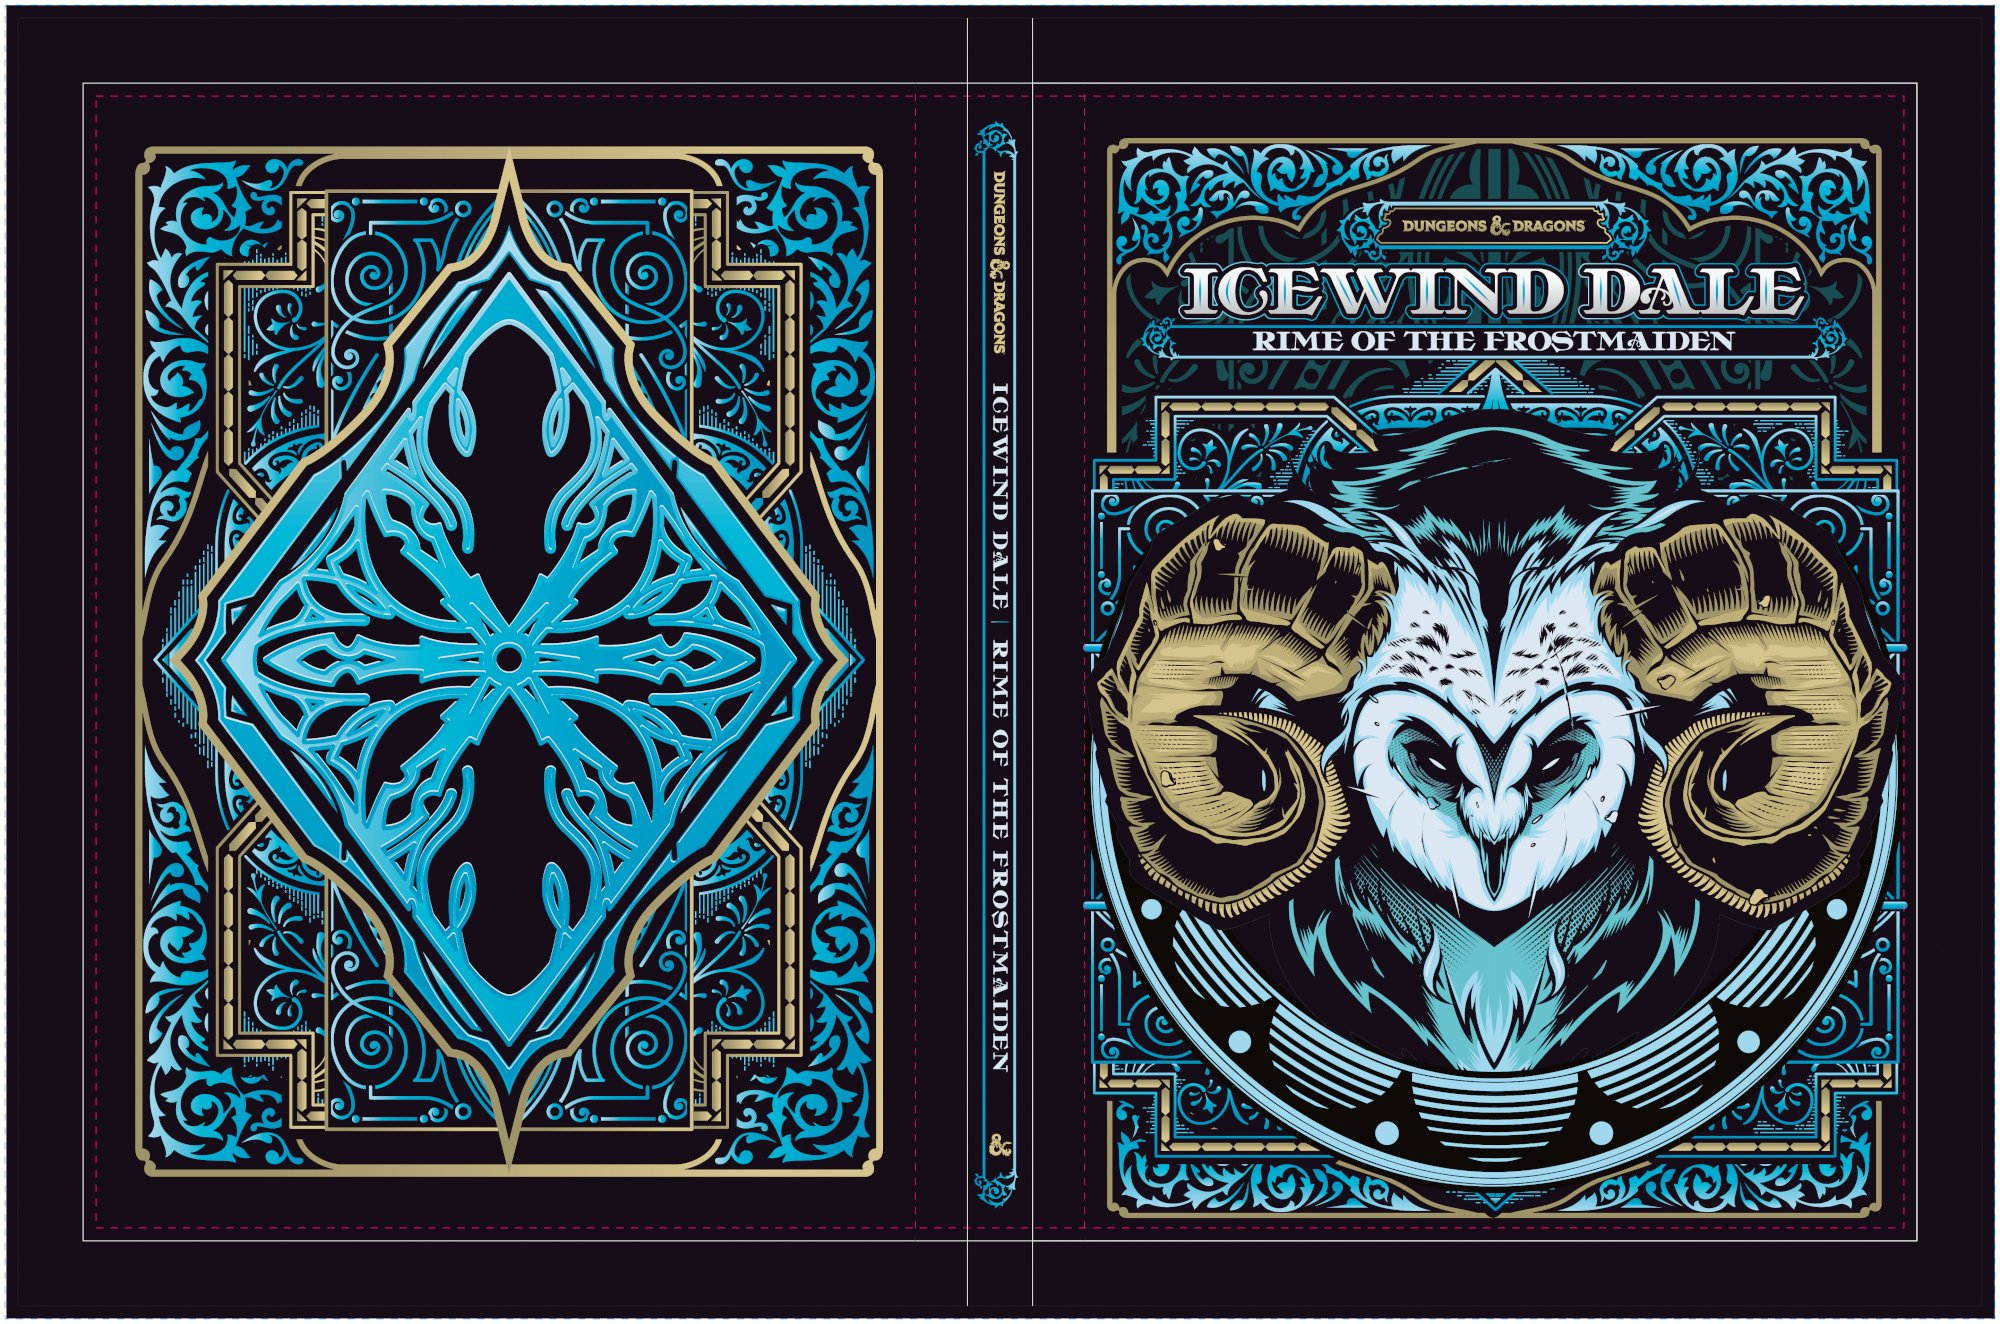 Icewind Dale Hydro47 front and back covers.jpg